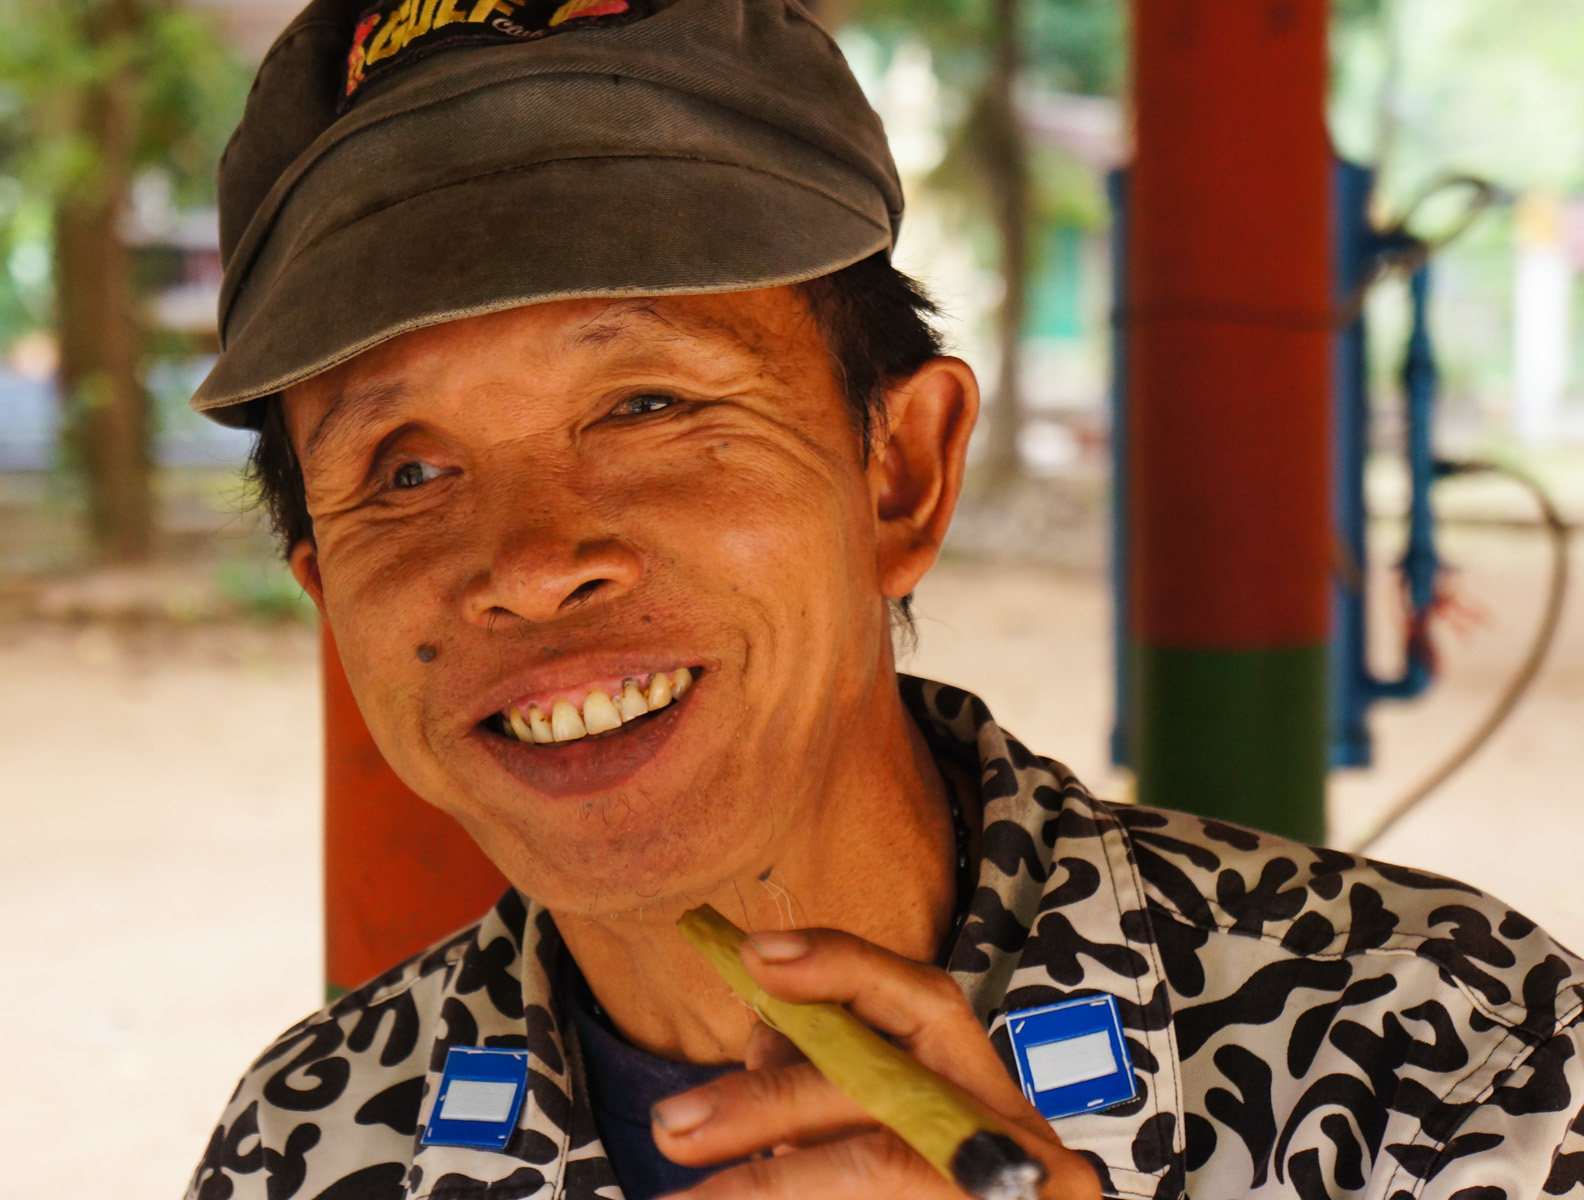 We asked for his portrait outside of the cave temple